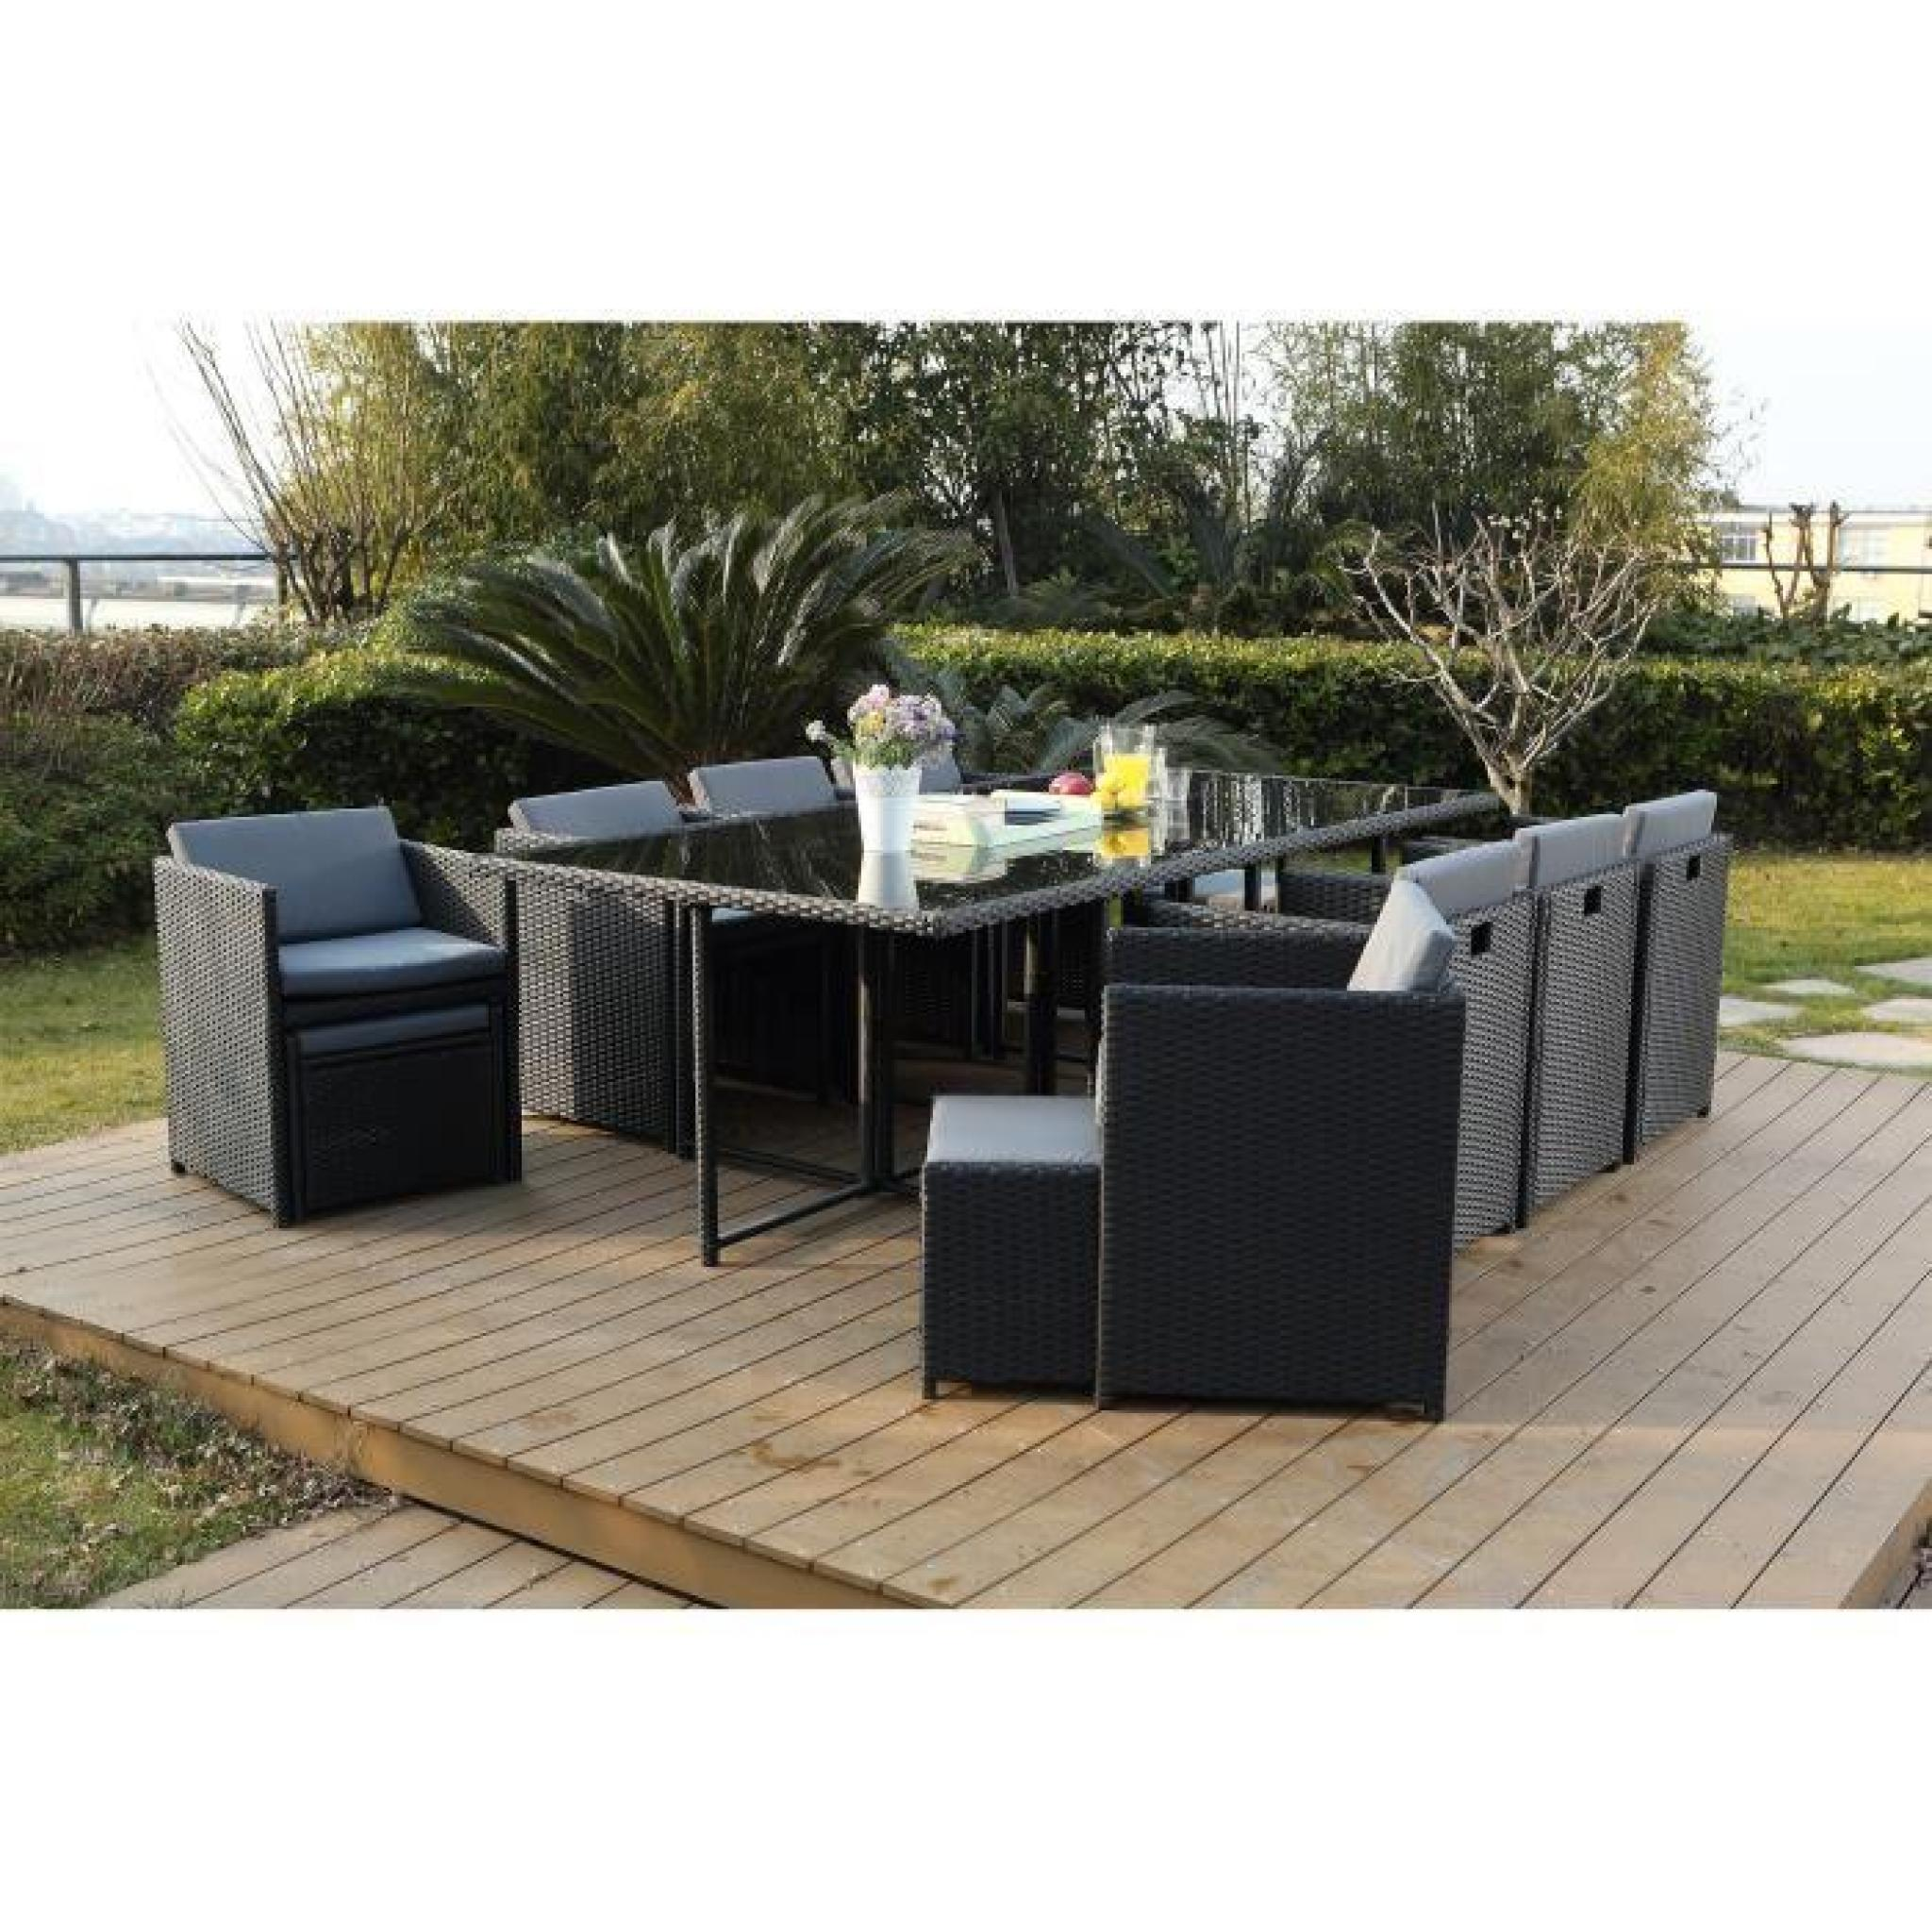 vito salon jardin noir encastrable 6 personnes achat. Black Bedroom Furniture Sets. Home Design Ideas